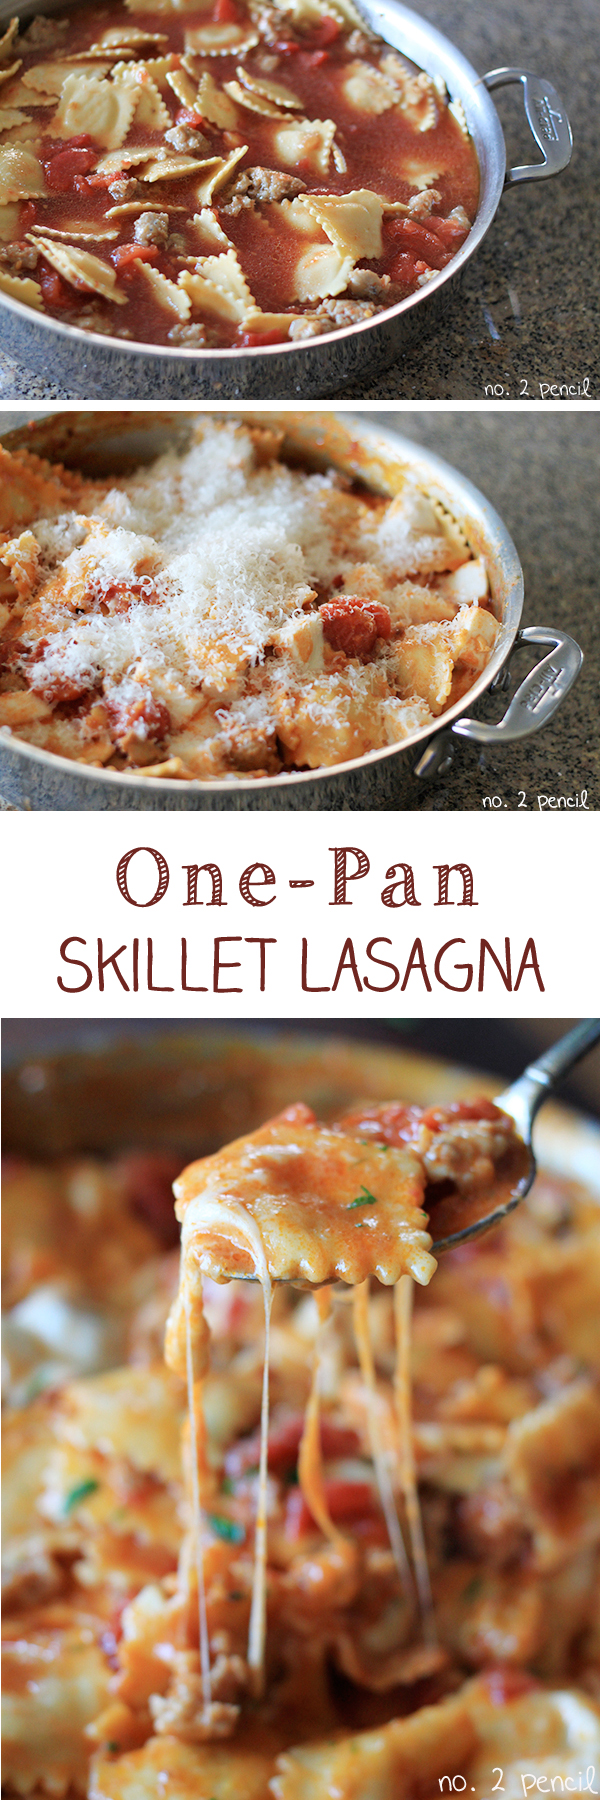 One-Pan-Skillet-Lasagna-Collage